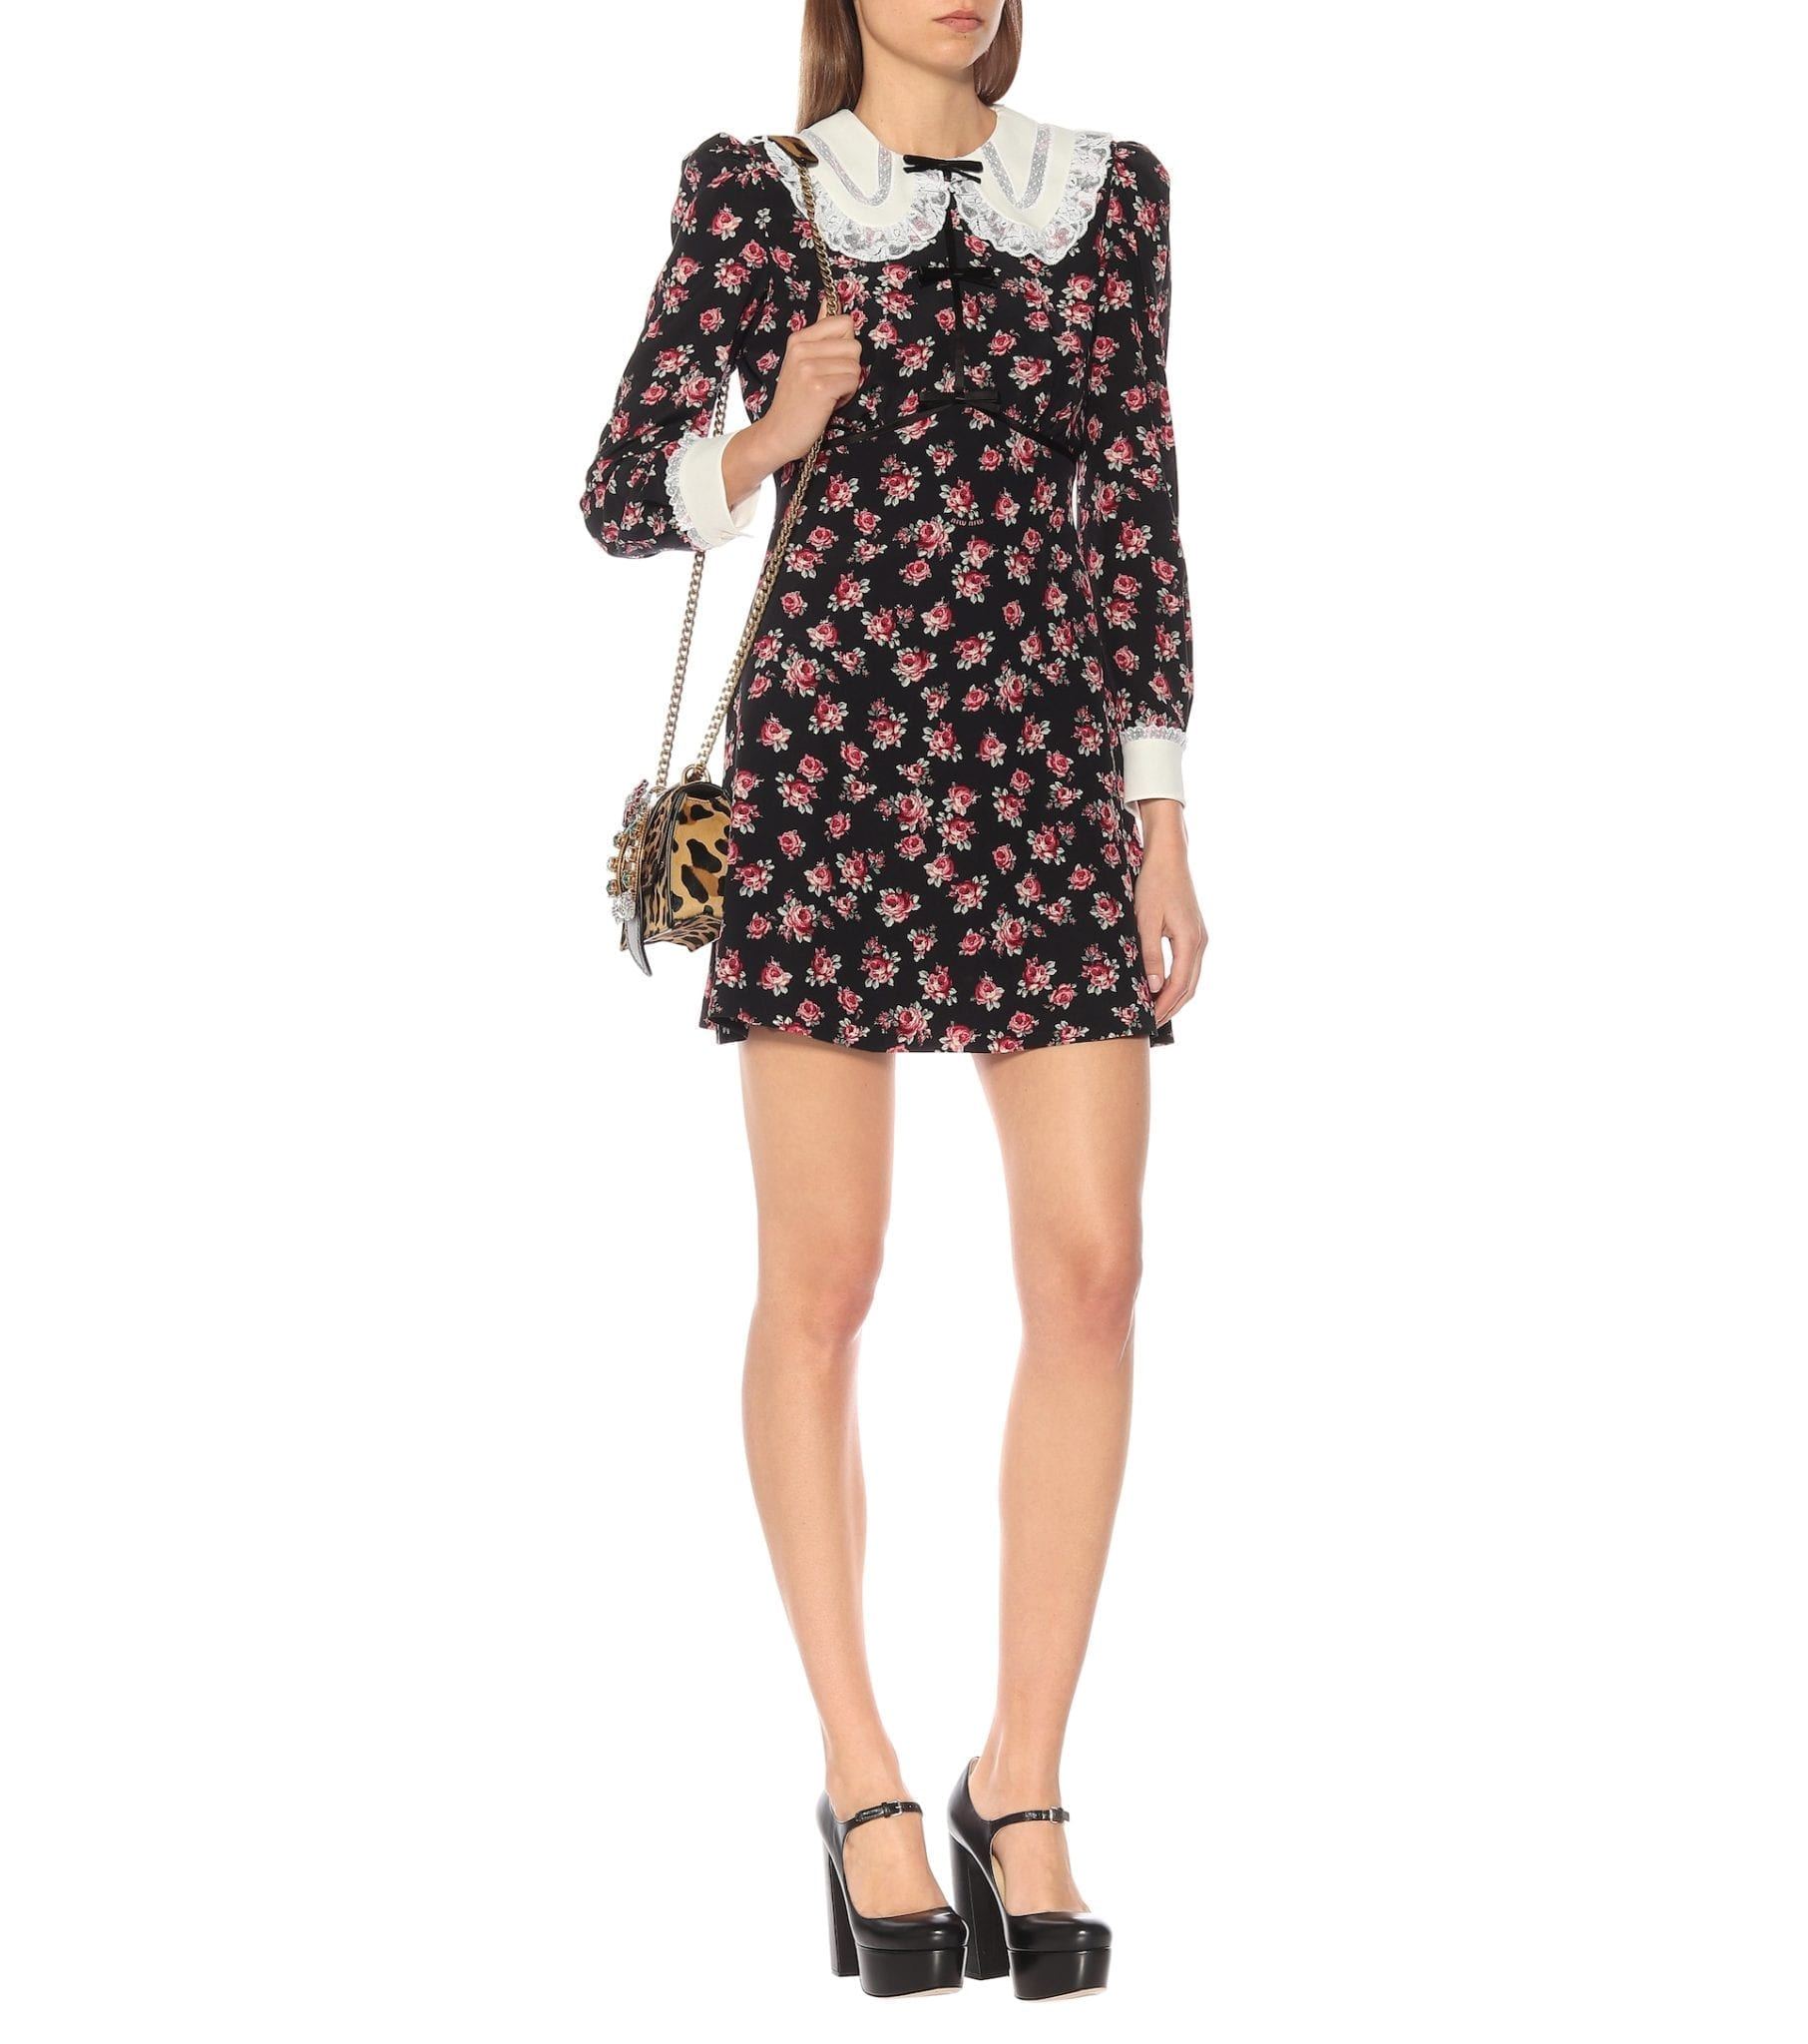 MIU MIU Floral Mini Dress